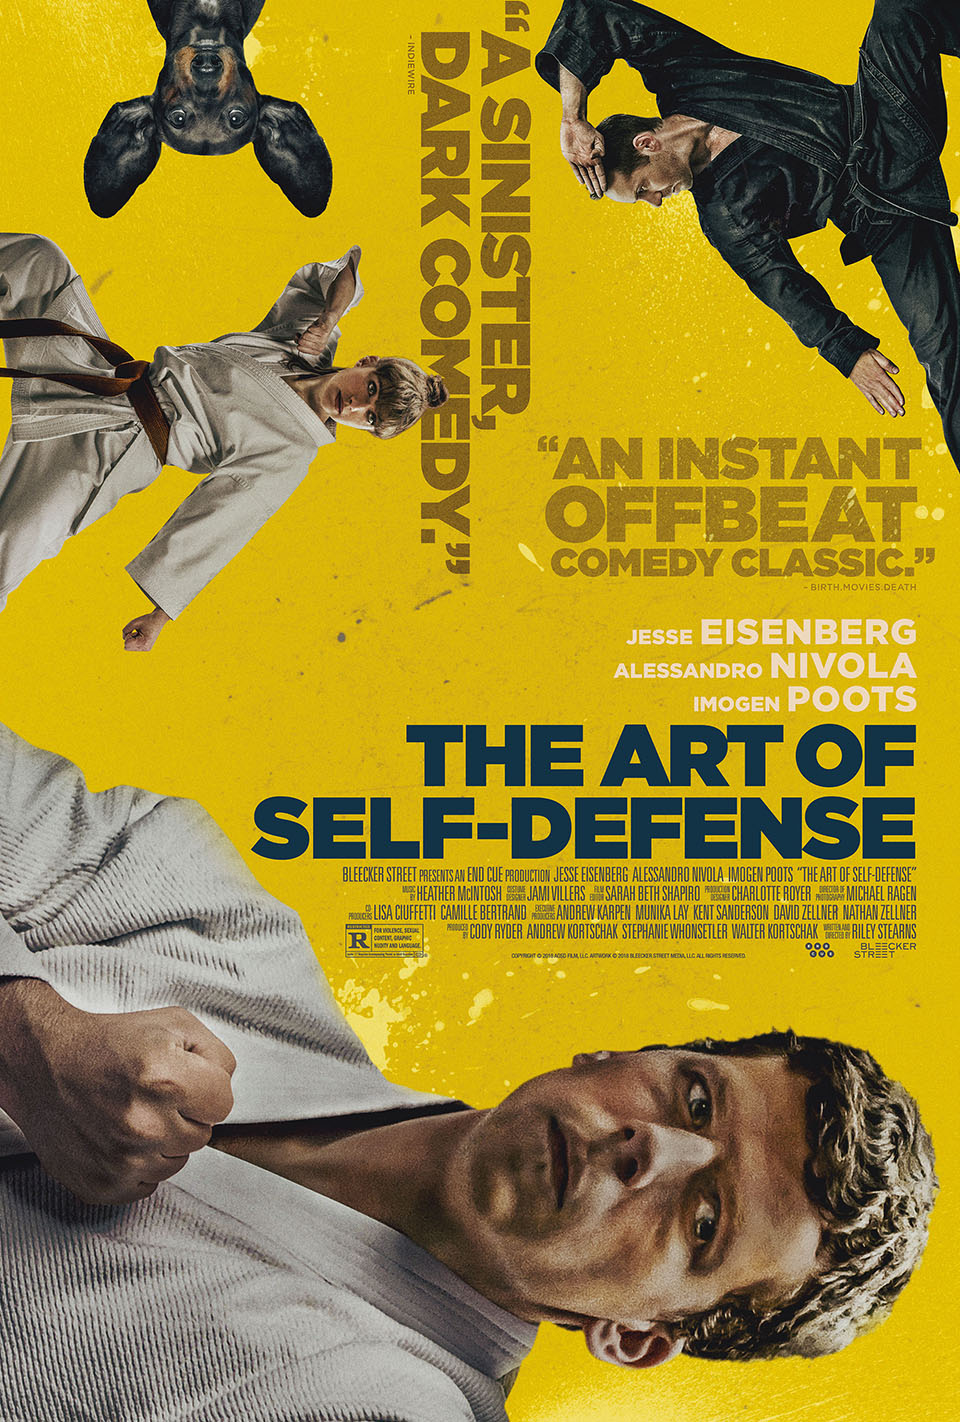 Best Movies To Watch 100 Must See Movies The Art Of Manliness >> The Art Of Self Defense Movie Review Jesse Eisenberg Stars